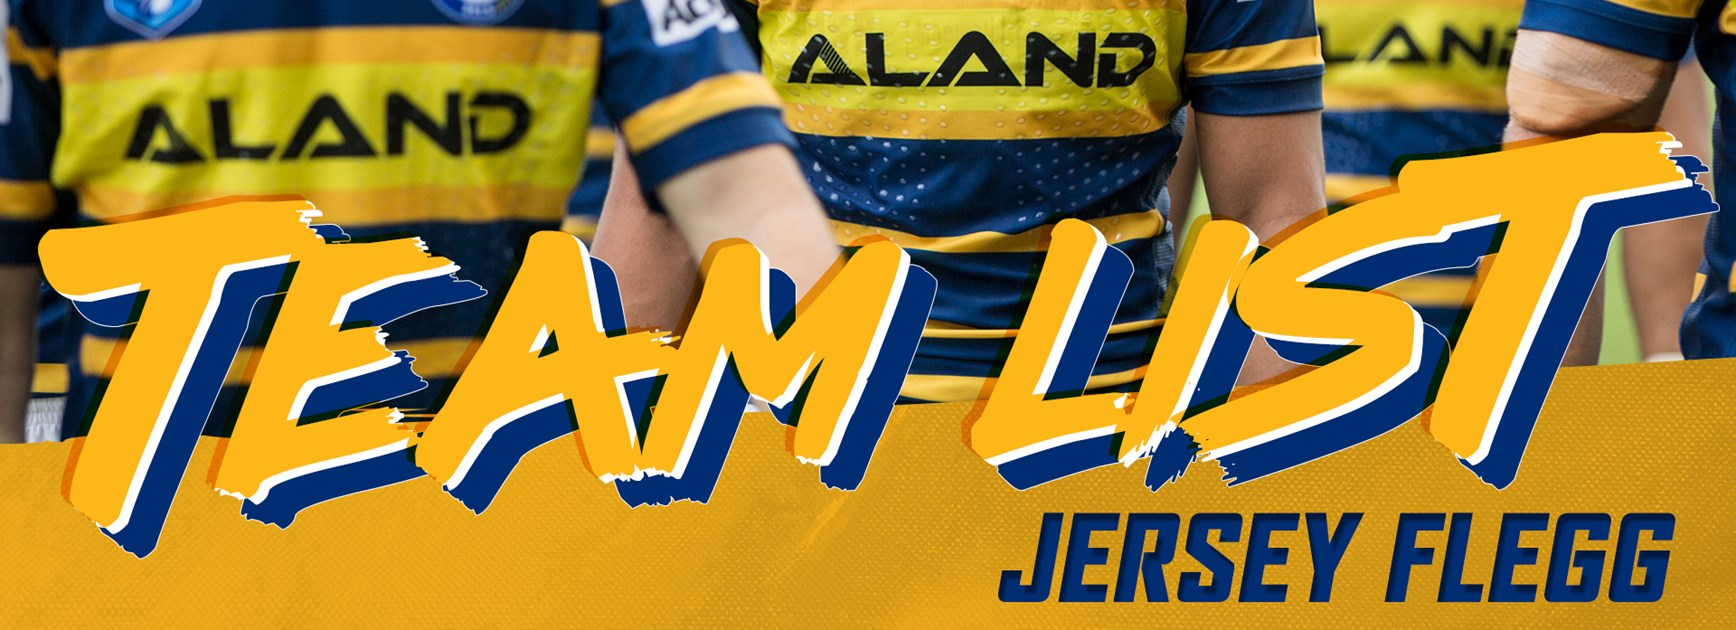 Eels Jersey Flegg Round 22 v Dragons Team List